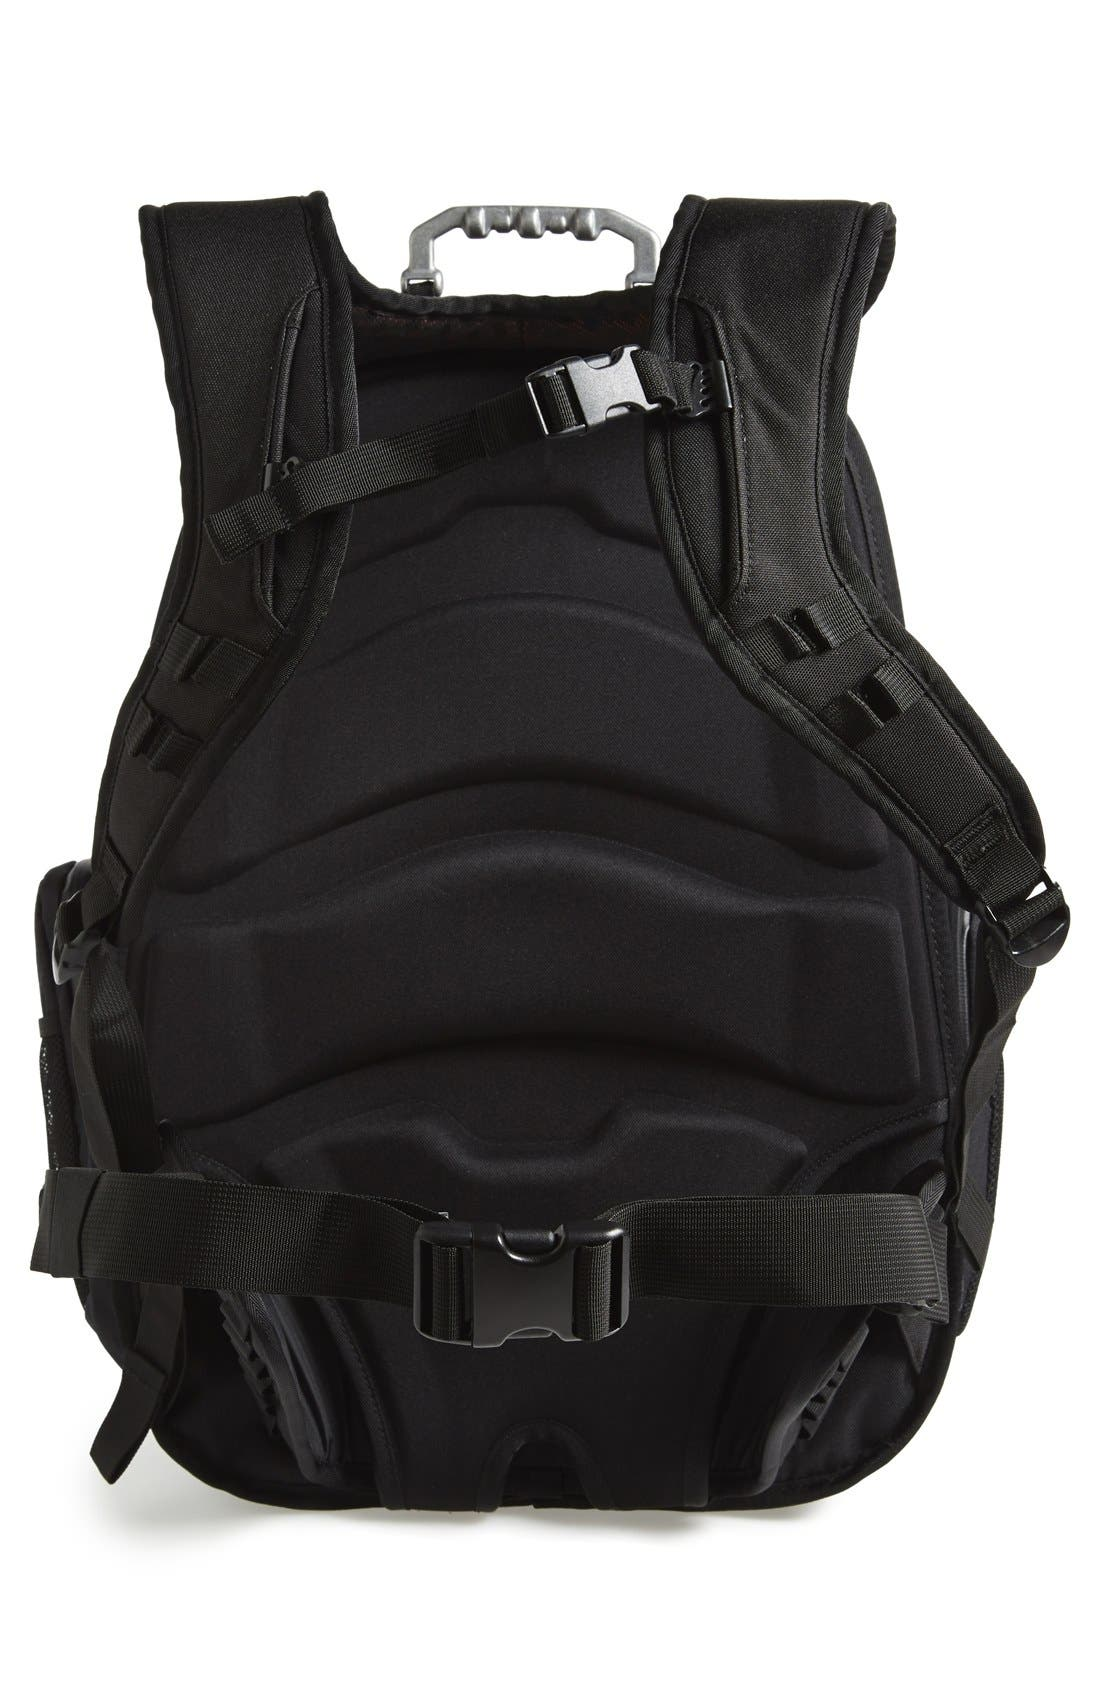 'Lunch Box' Cooler Backpack,                             Alternate thumbnail 3, color,                             001